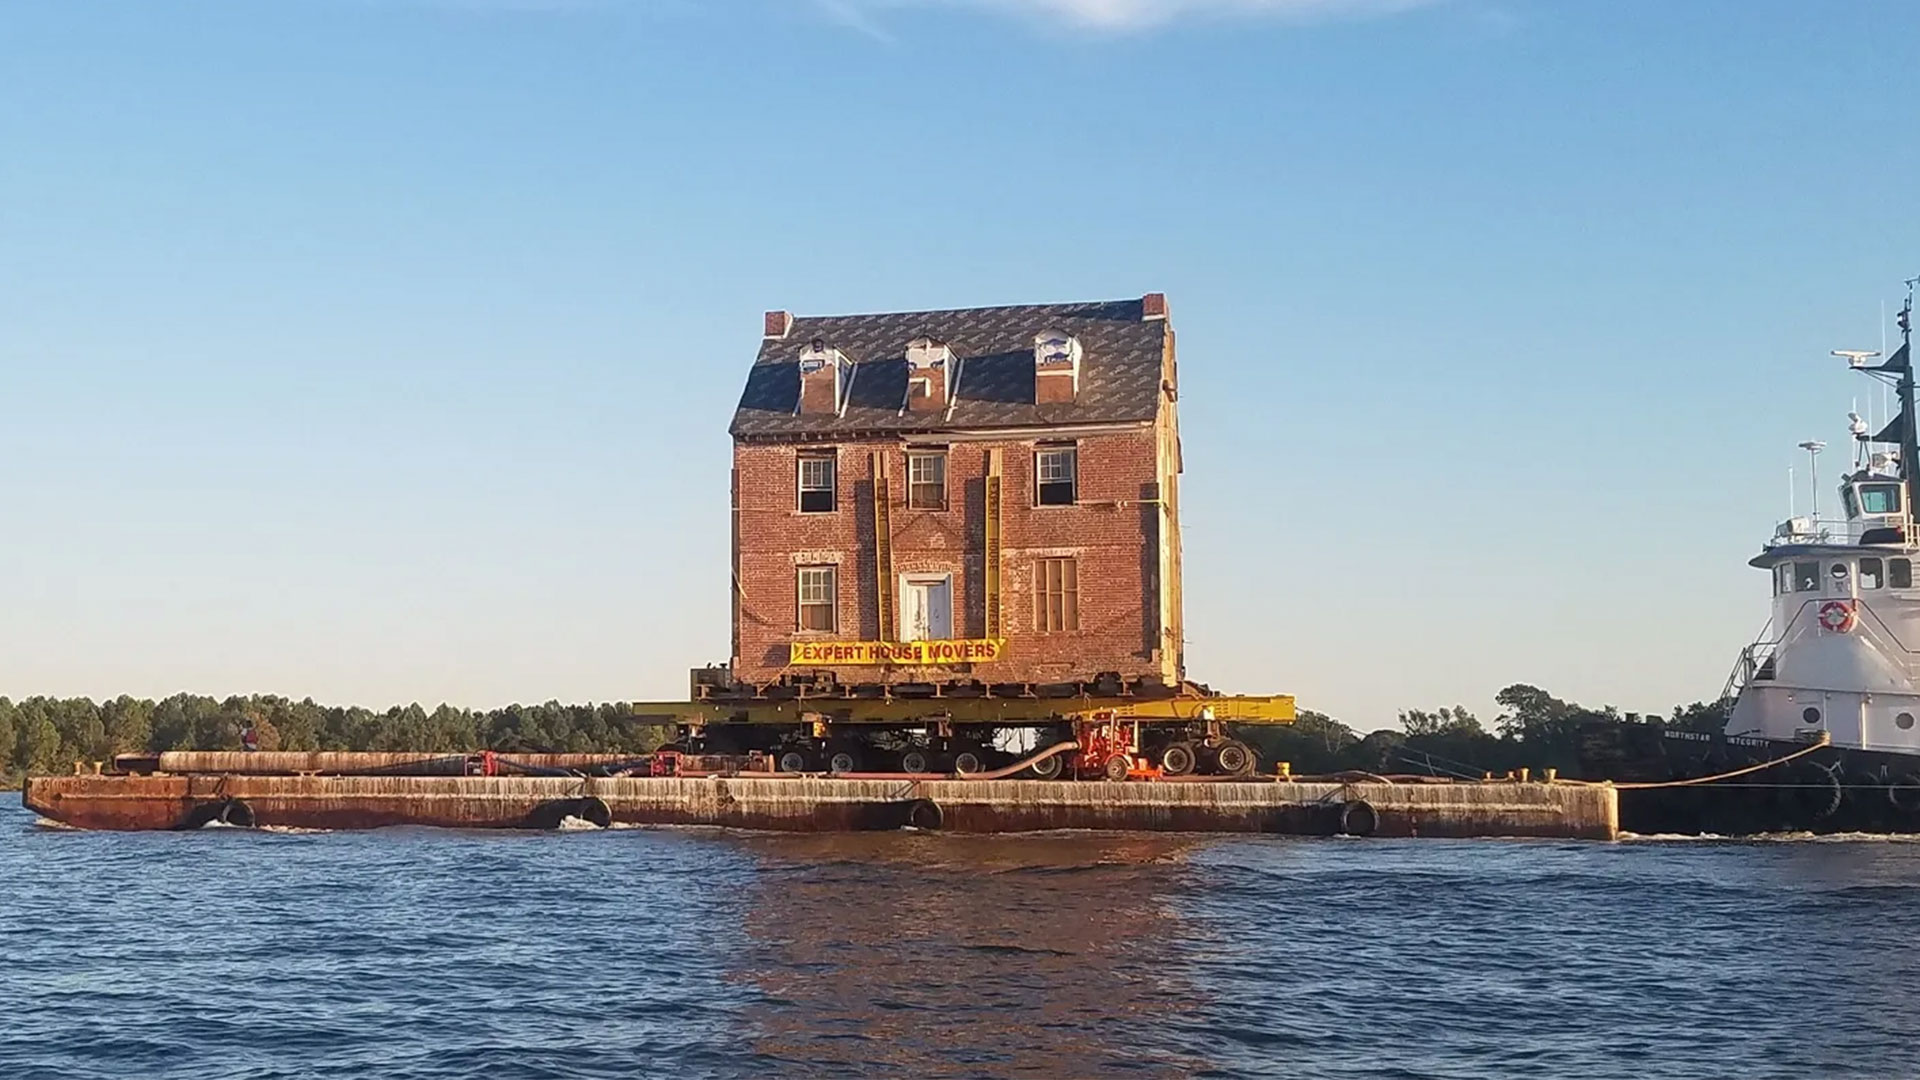 Family Moves 255-Year-Old Mansion 50 Miles to New Home by Boat